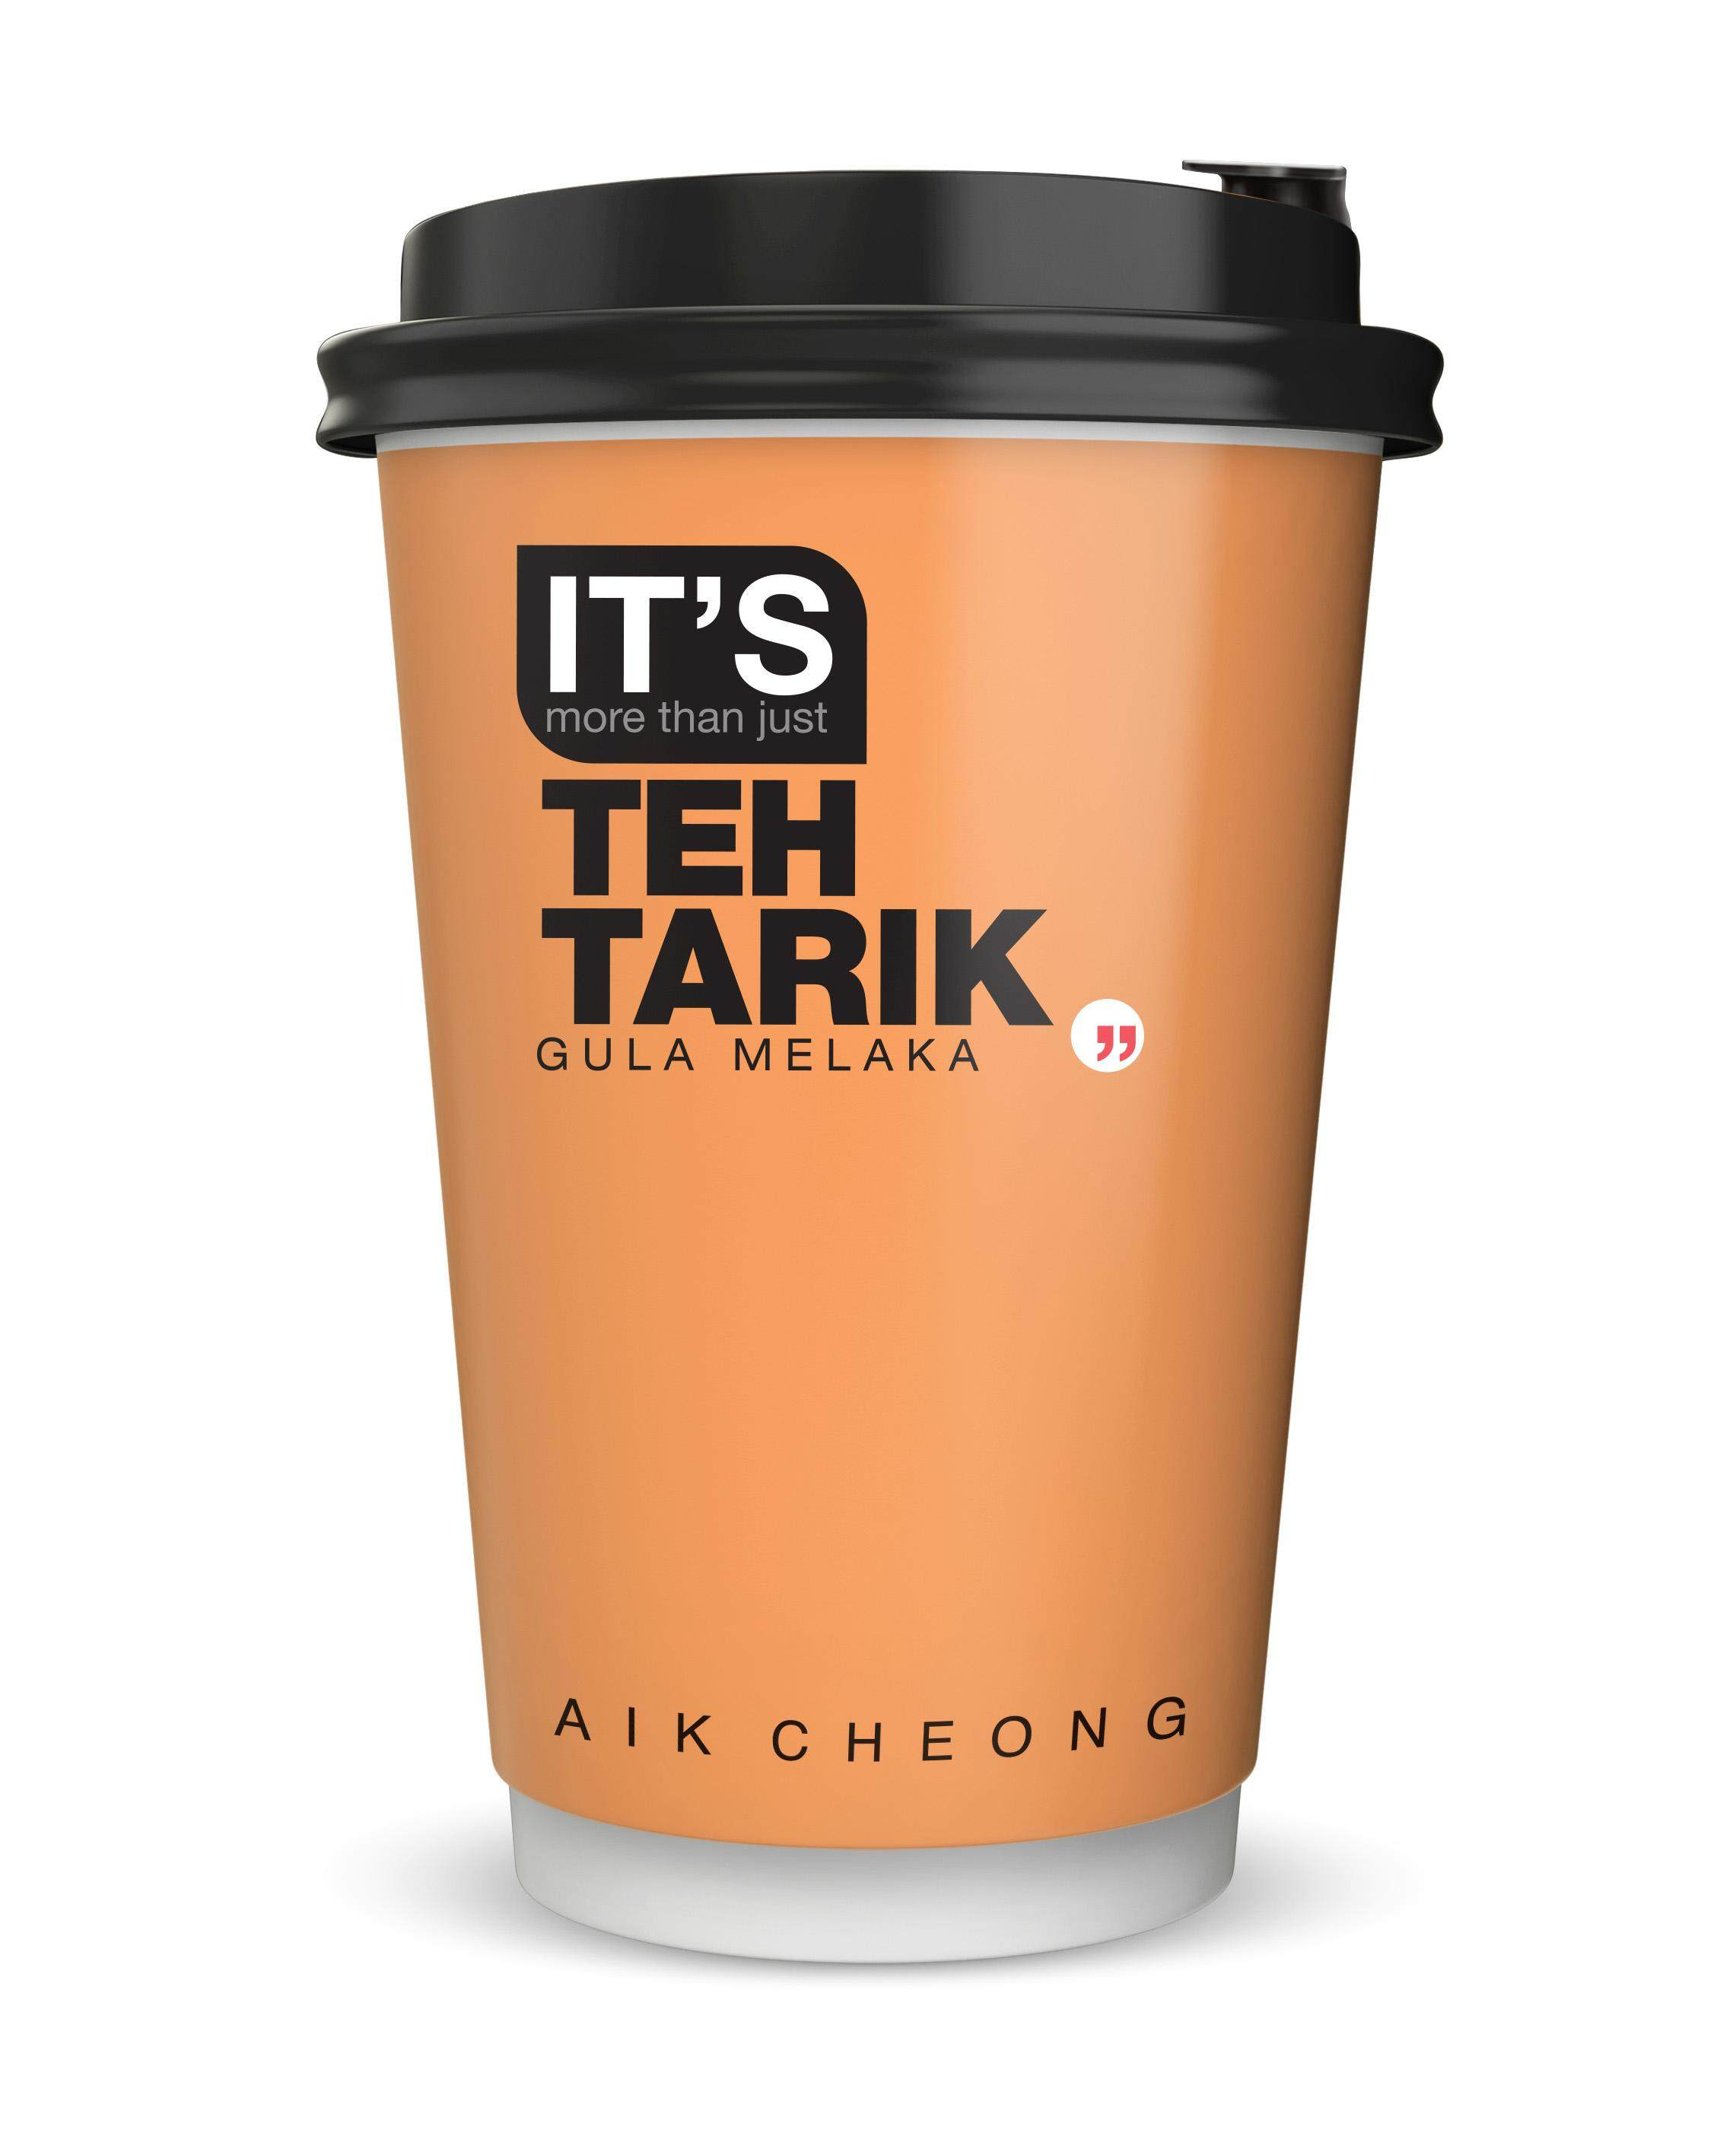 [NOT FOR SALE] AIK CHEONG IT'S Cup 72g - Teh Tarik